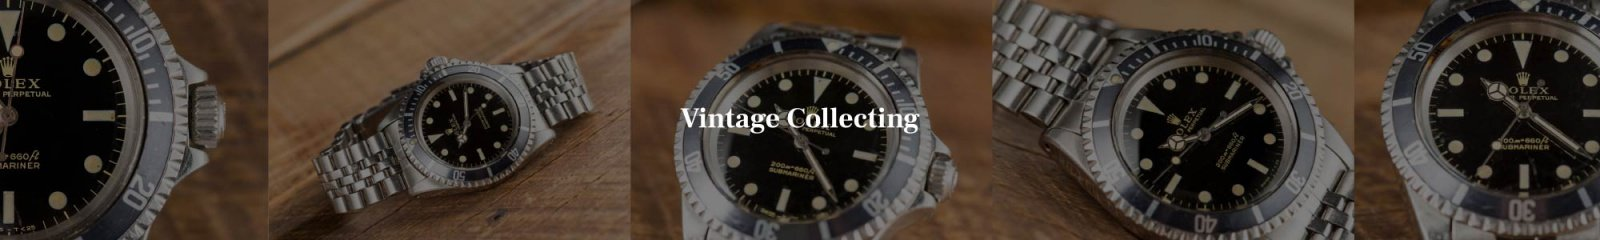 Vintage Rolex collecting